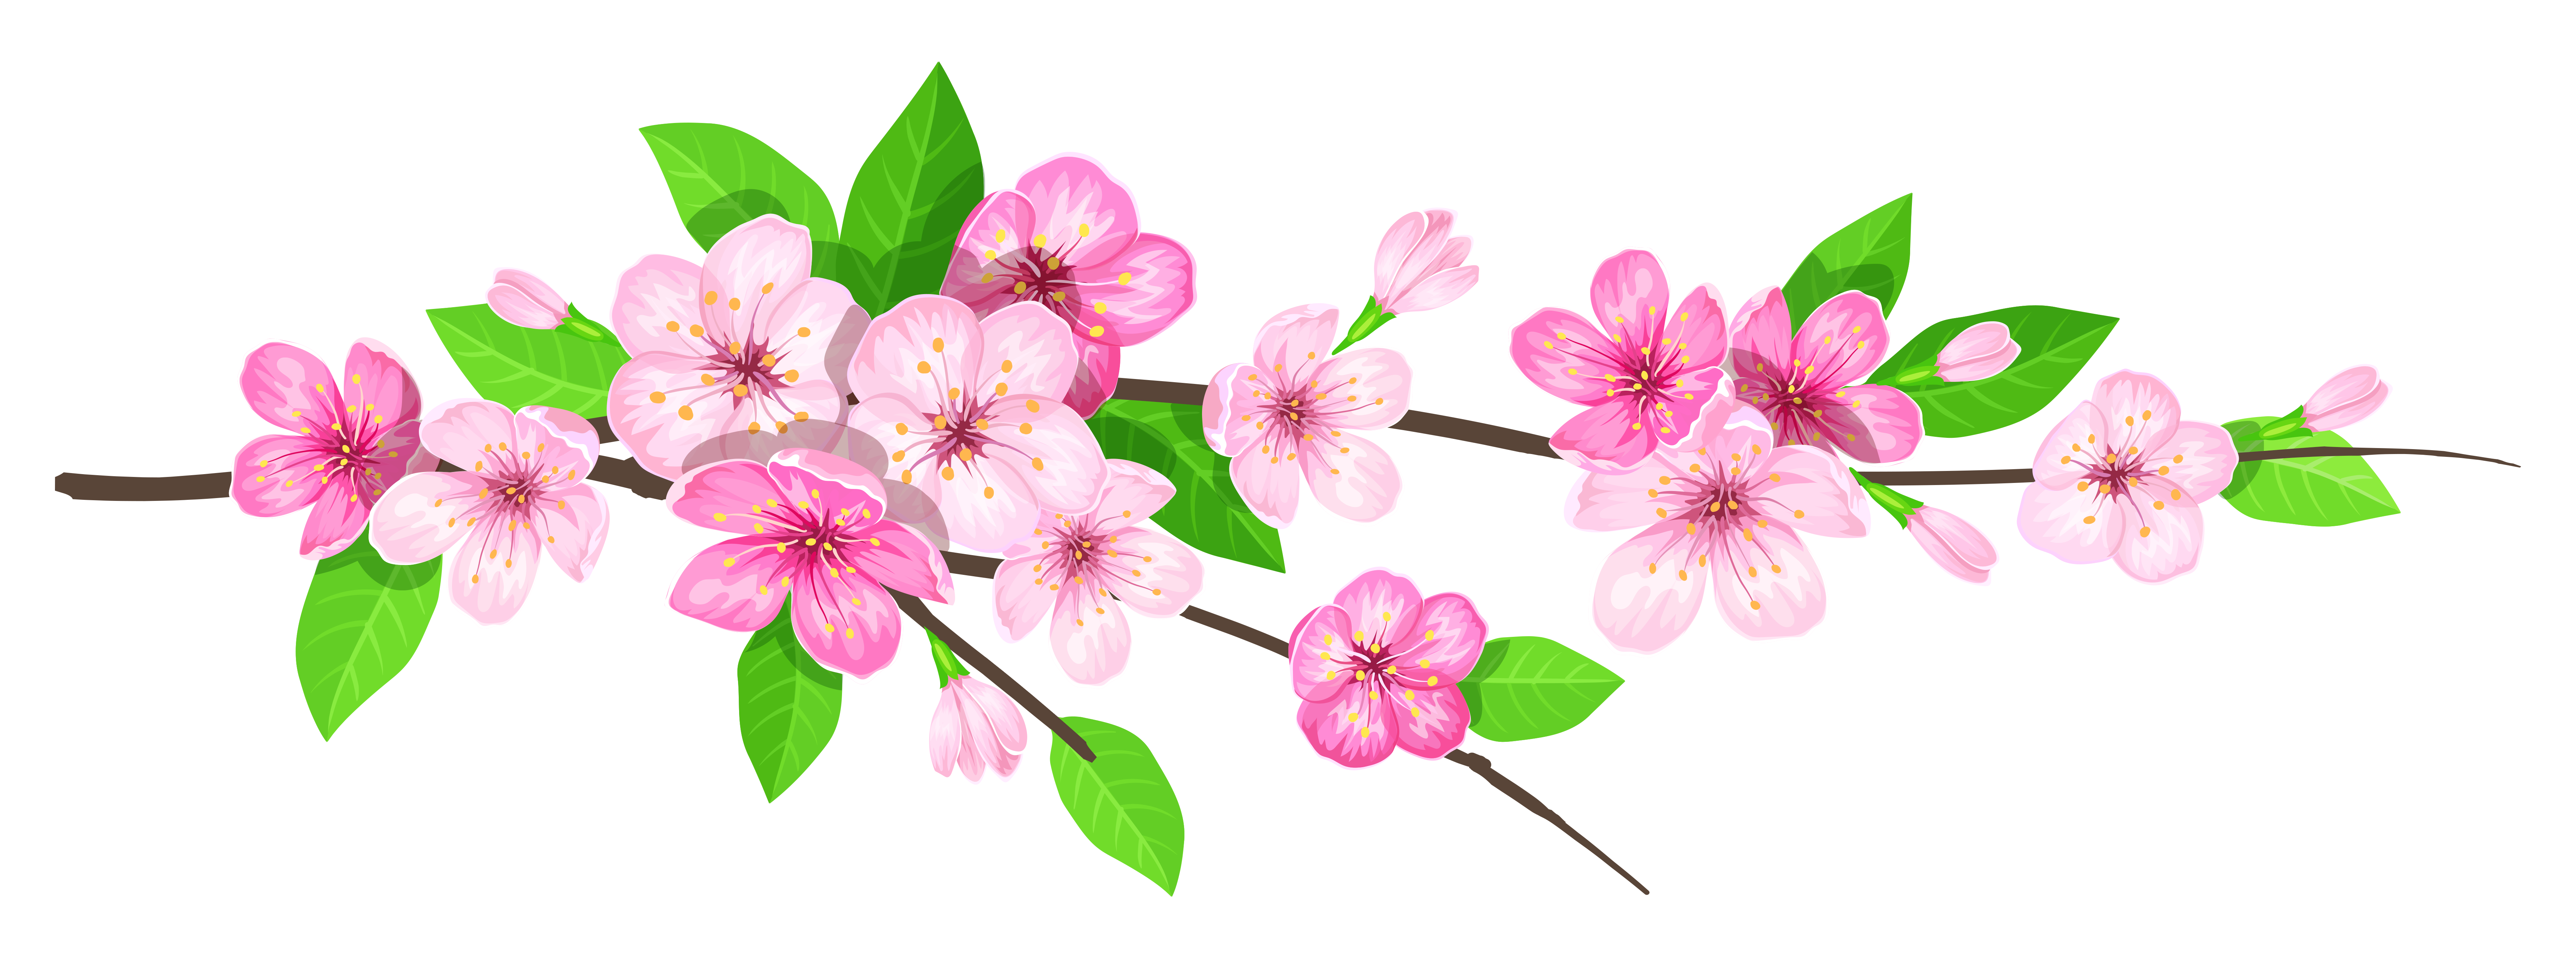 Spring branch clipart clipart transparent Pink Spring Branch PNG Image | Gallery Yopriceville - High ... clipart transparent